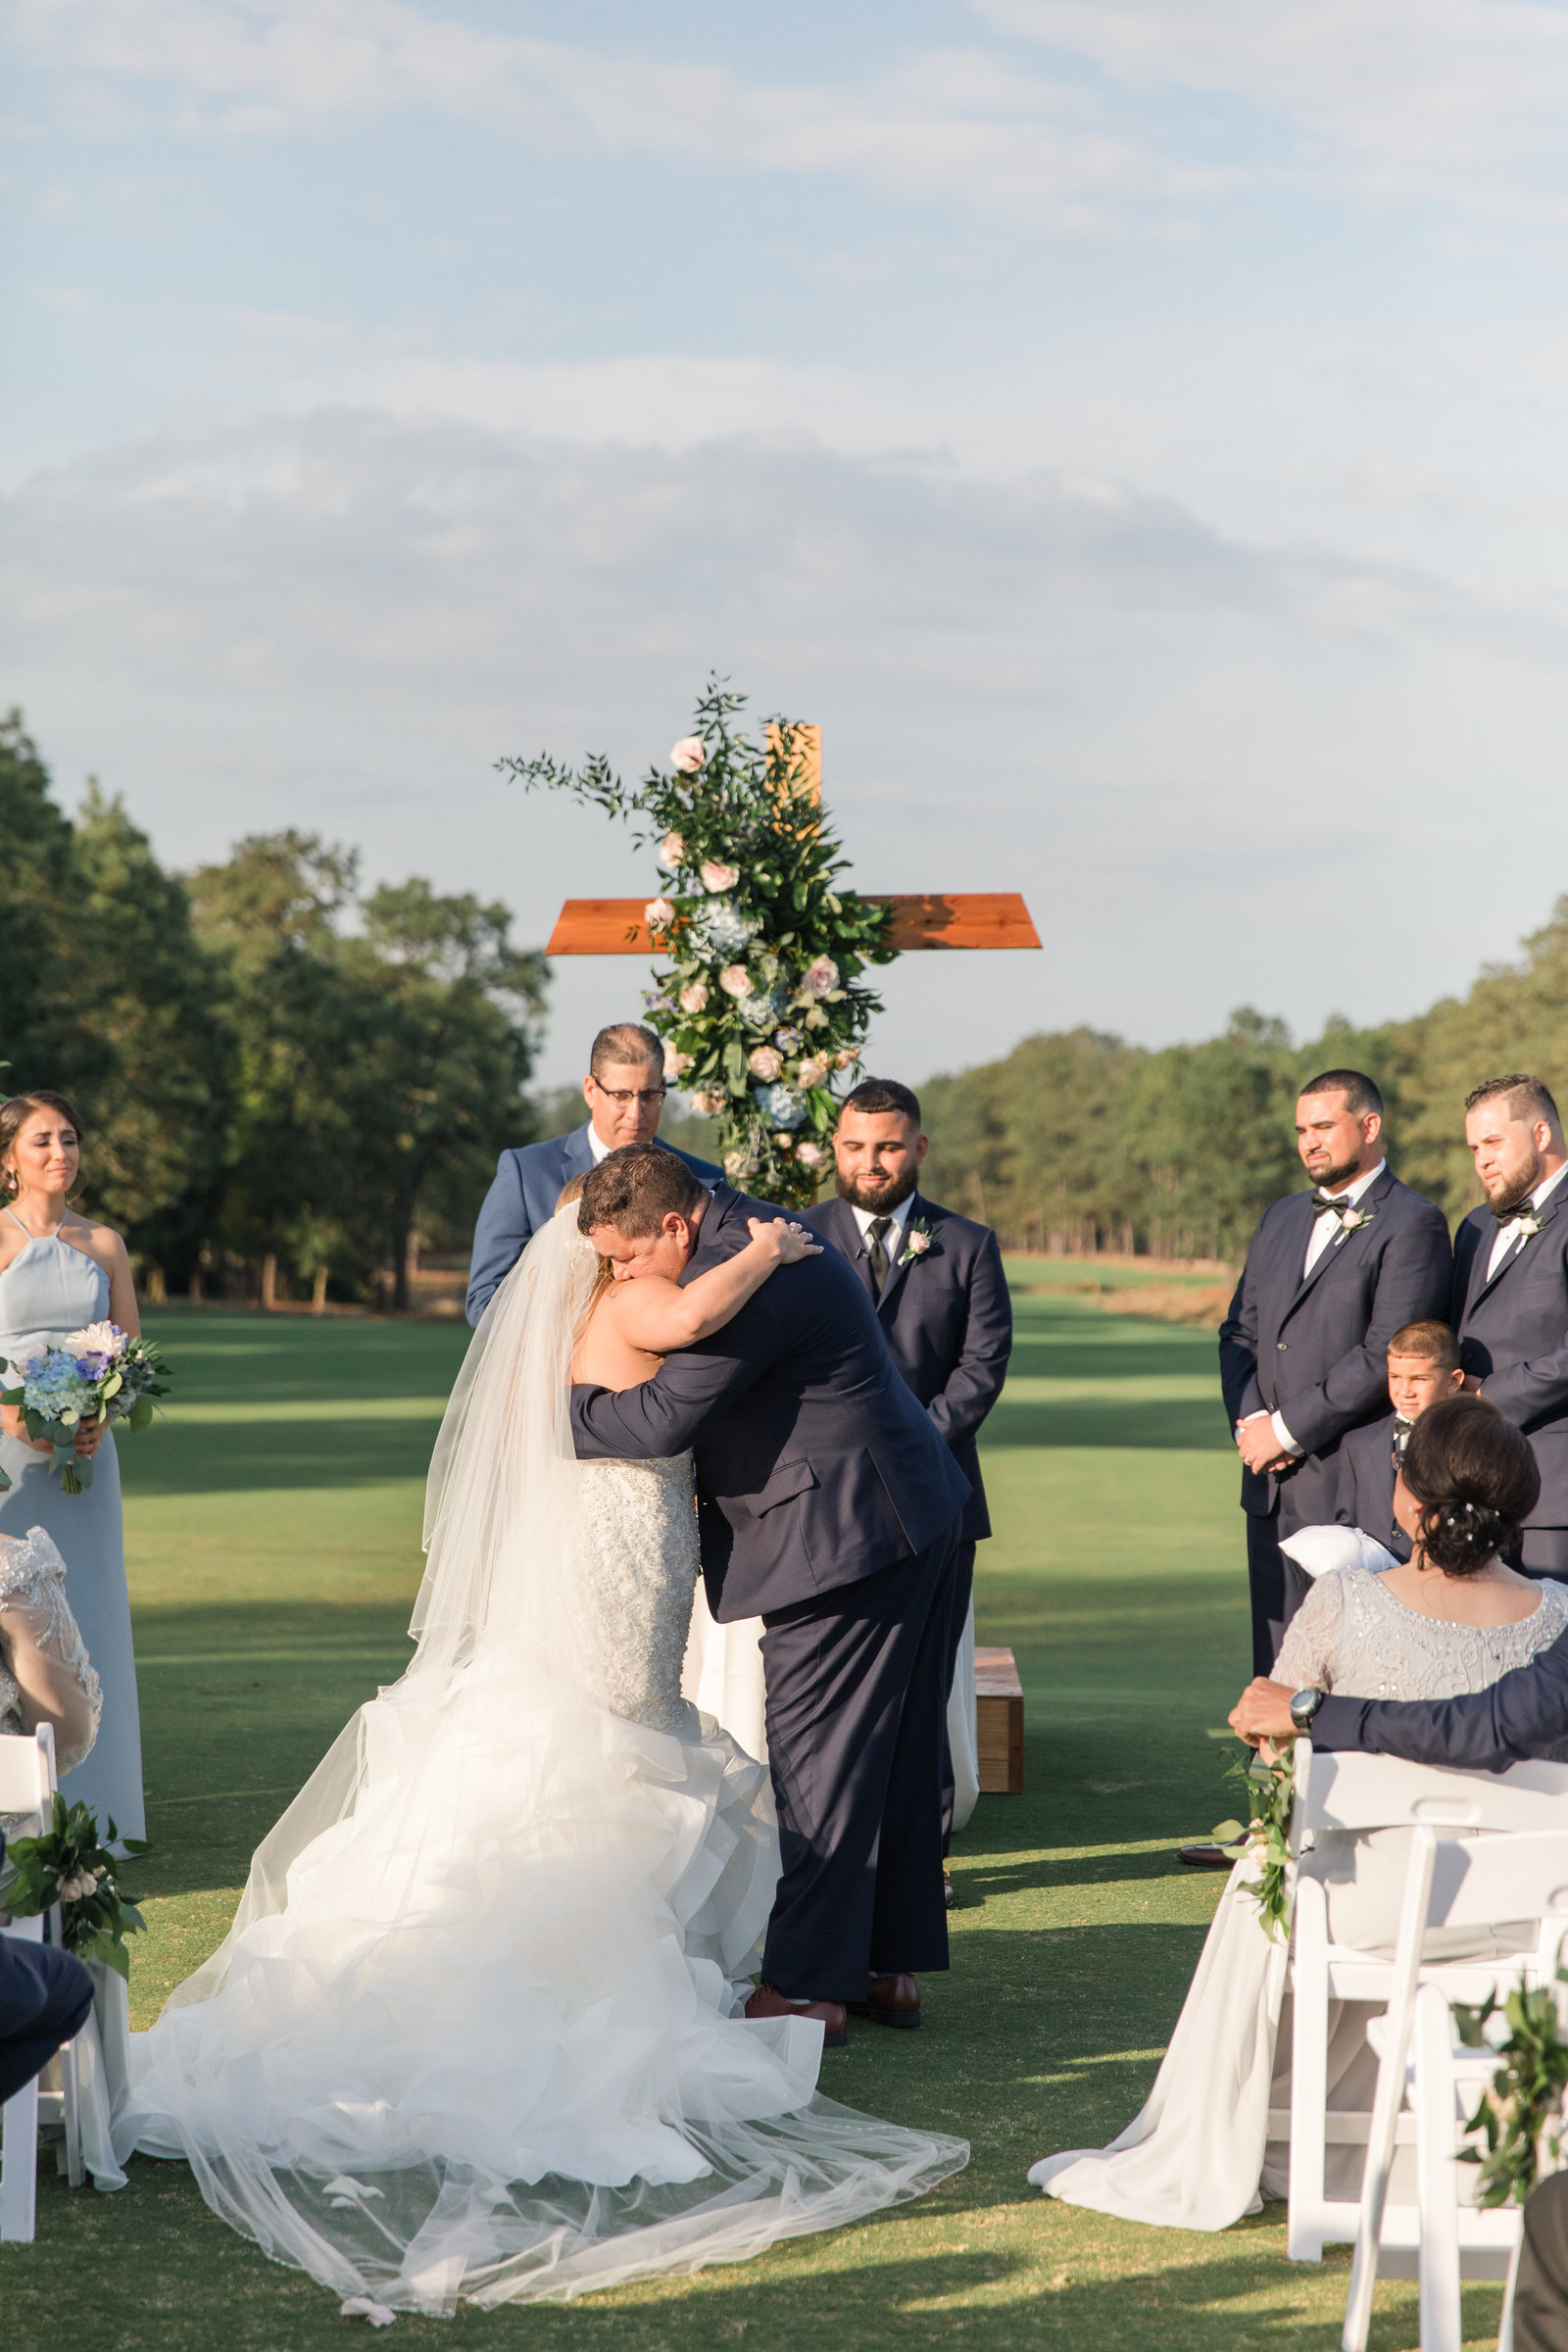 Jennifer_B_Photography-Pinehurst_Club-Pinehurst_NC-Wedding_Day-Caleb___Miranda-JB_Favs-2019-0163